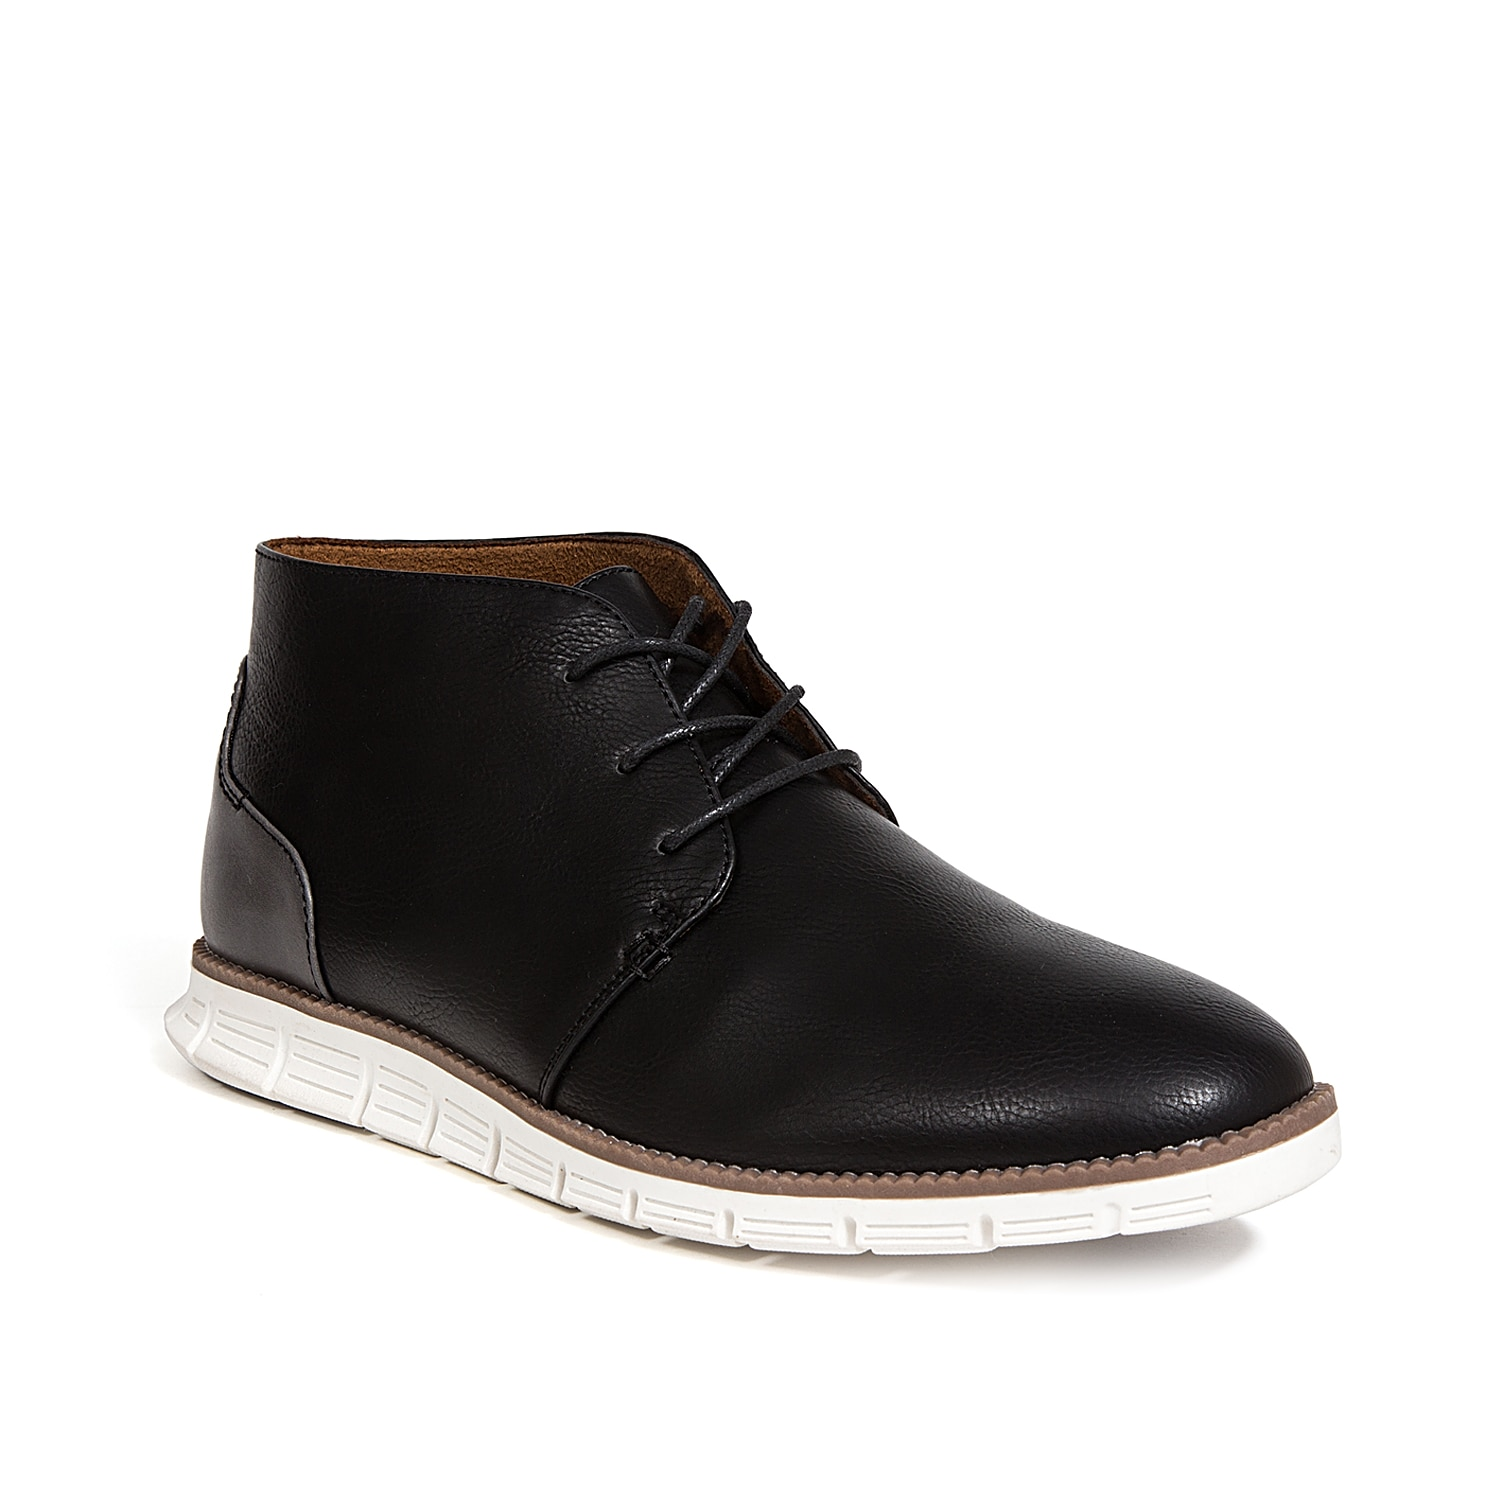 The Adrian chukka from Deer Stags looks like a boot but feels like a sneaker. With a memory foam footbed and EVA midsole, this lace-up will keep you comfortable everywhere you go.